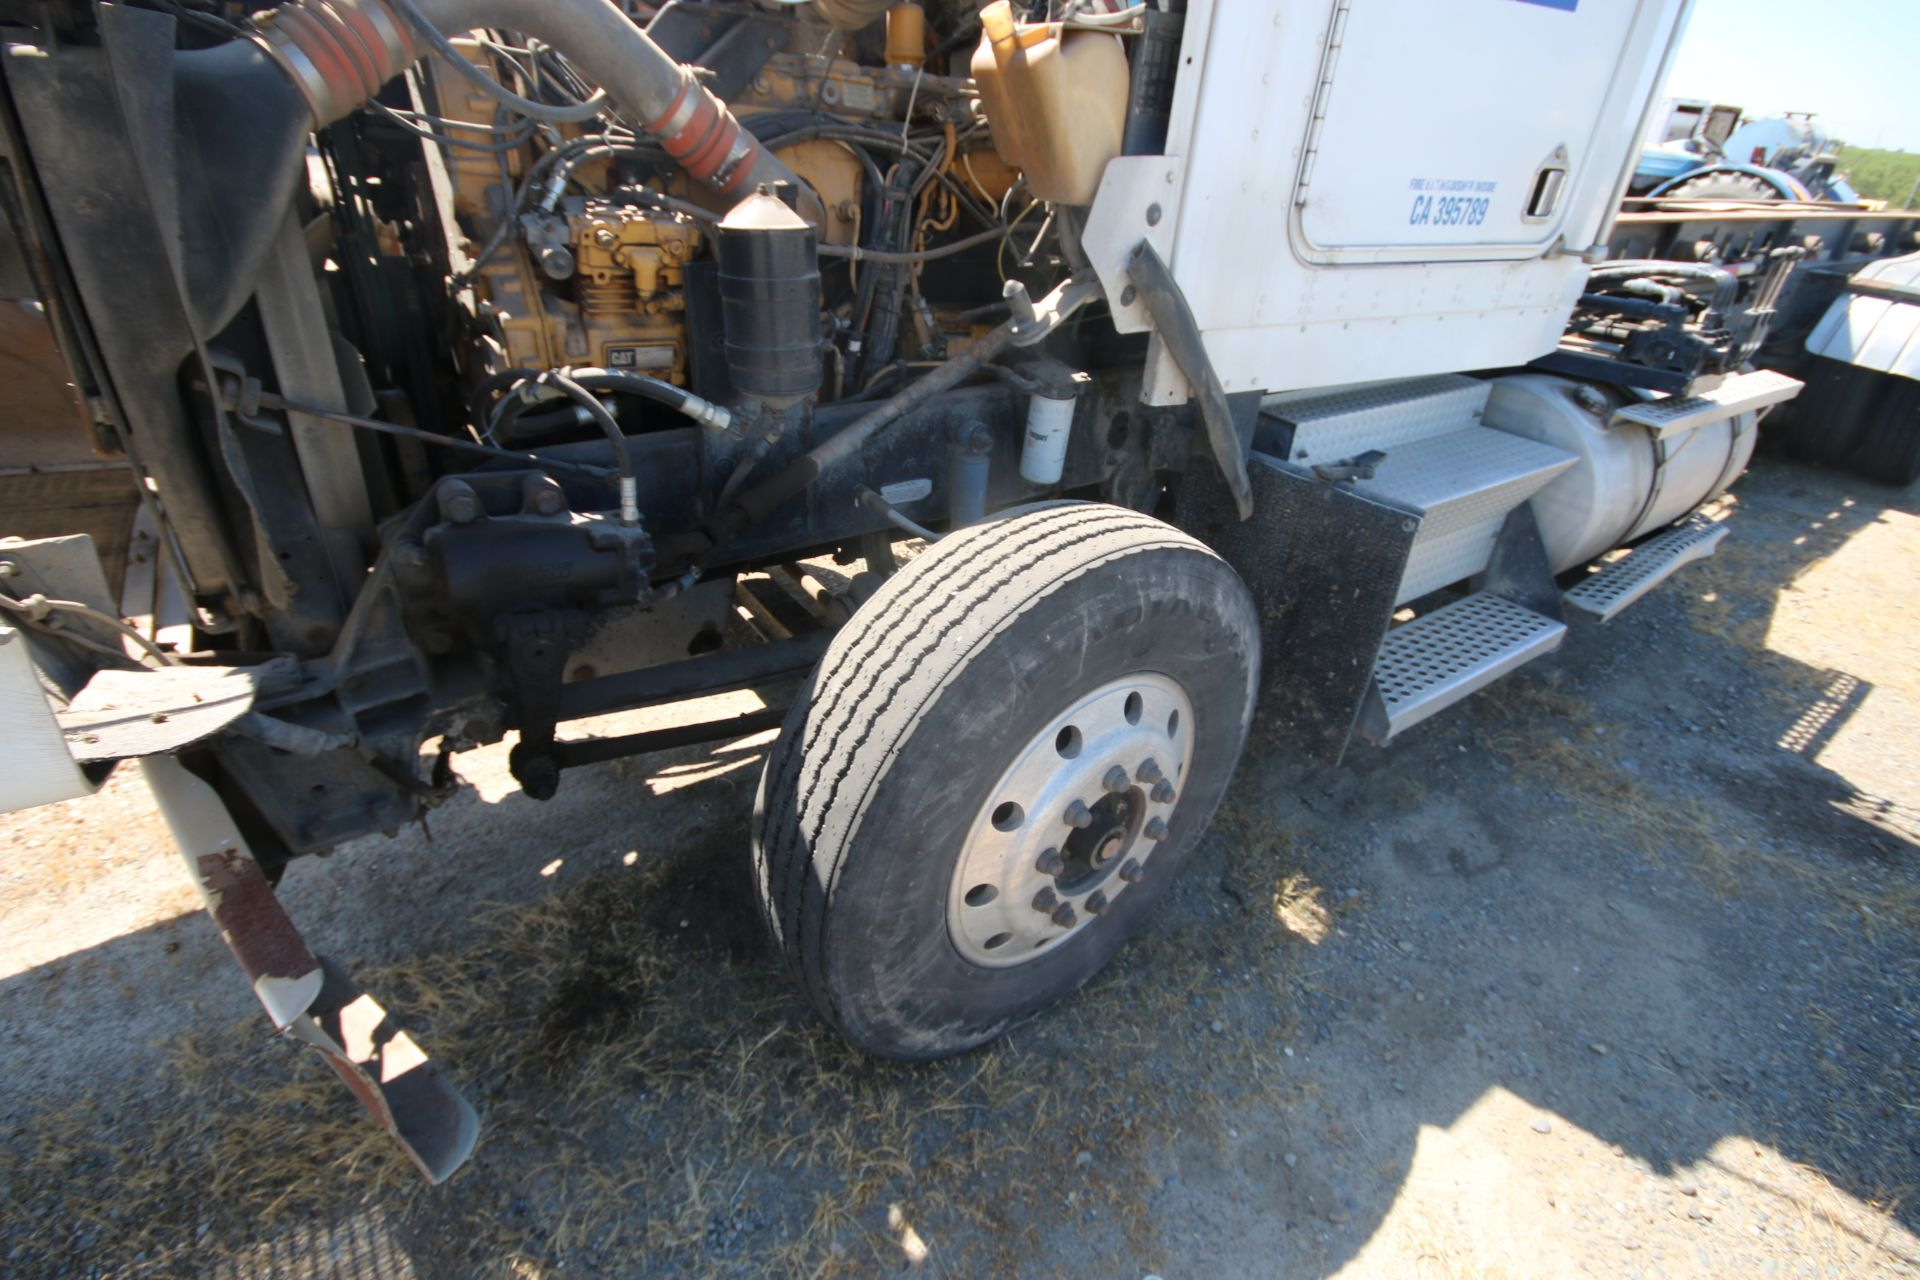 1996 Kenworth 3-Axle Roll-Off Straight Truck, VIN #: 1XKDDB9XOTS687107, with 24,722 Miles, License - Image 22 of 30